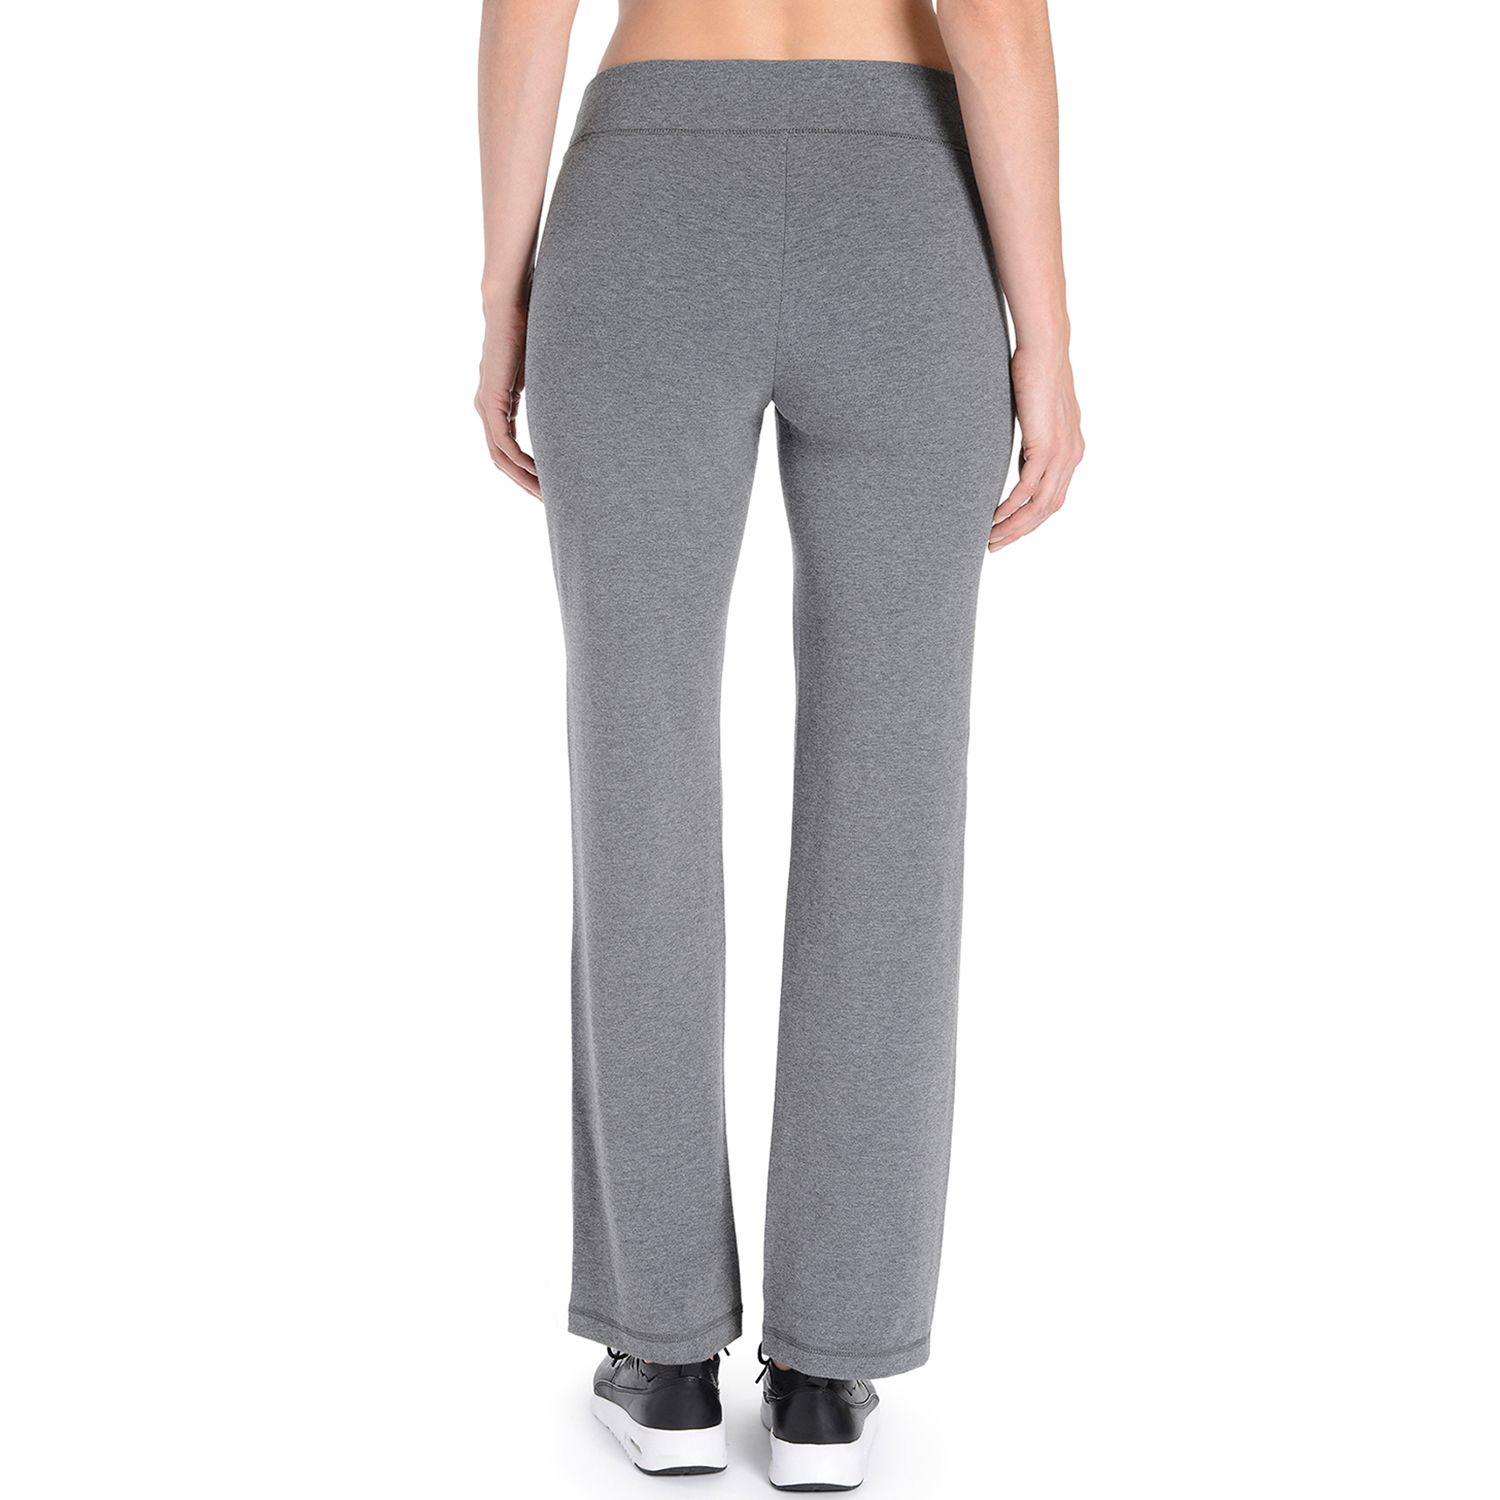 d4055526f45cd Danskin Yoga Pants - Bottoms, Clothing | Kohl's